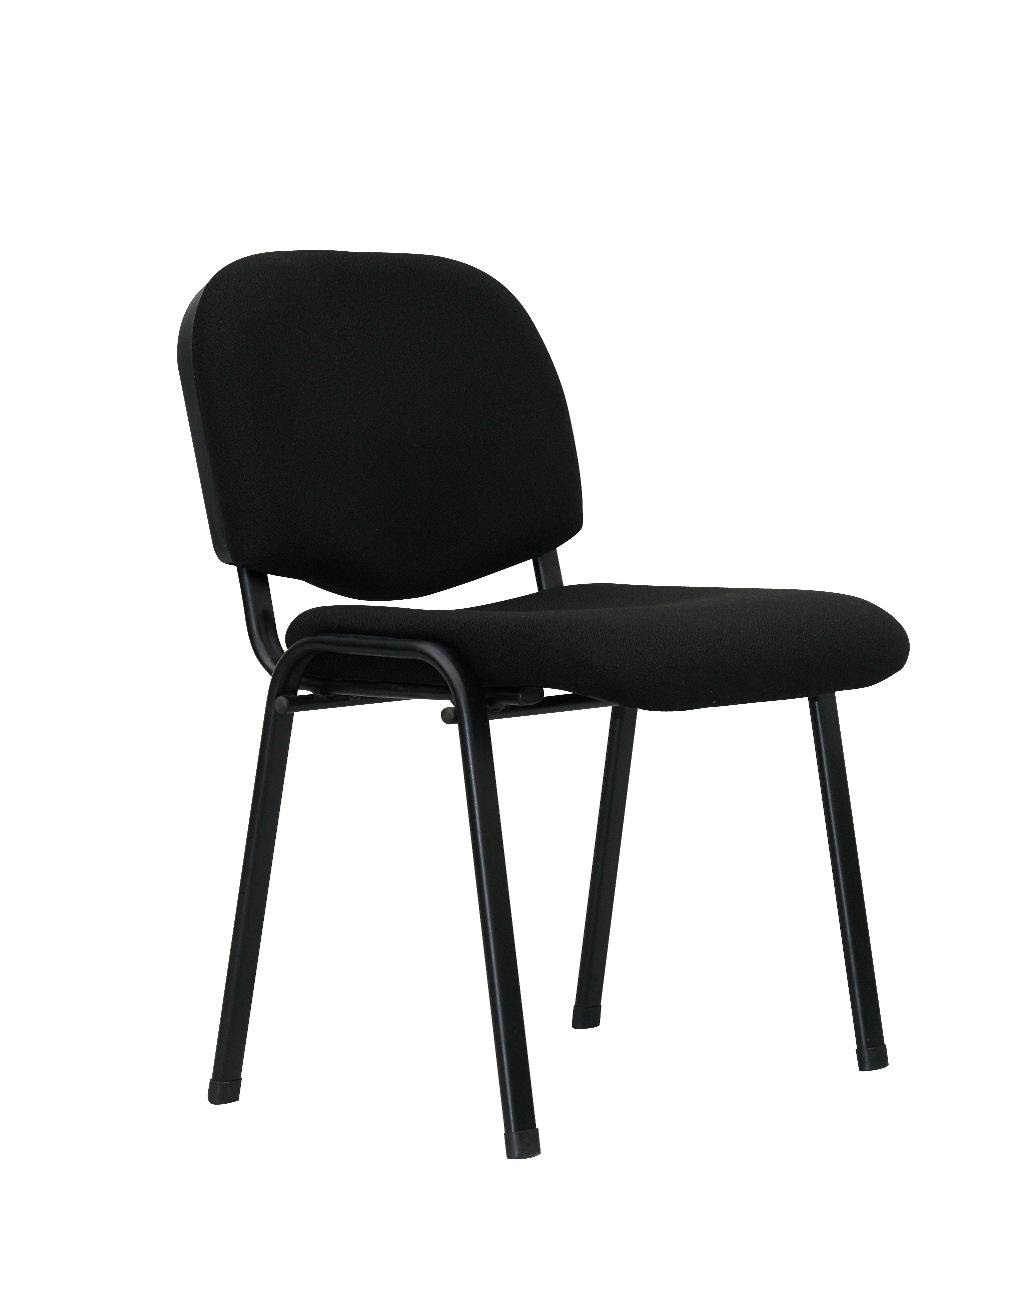 A1 Stacker Chair heavy-duty Office Furniture Store ...